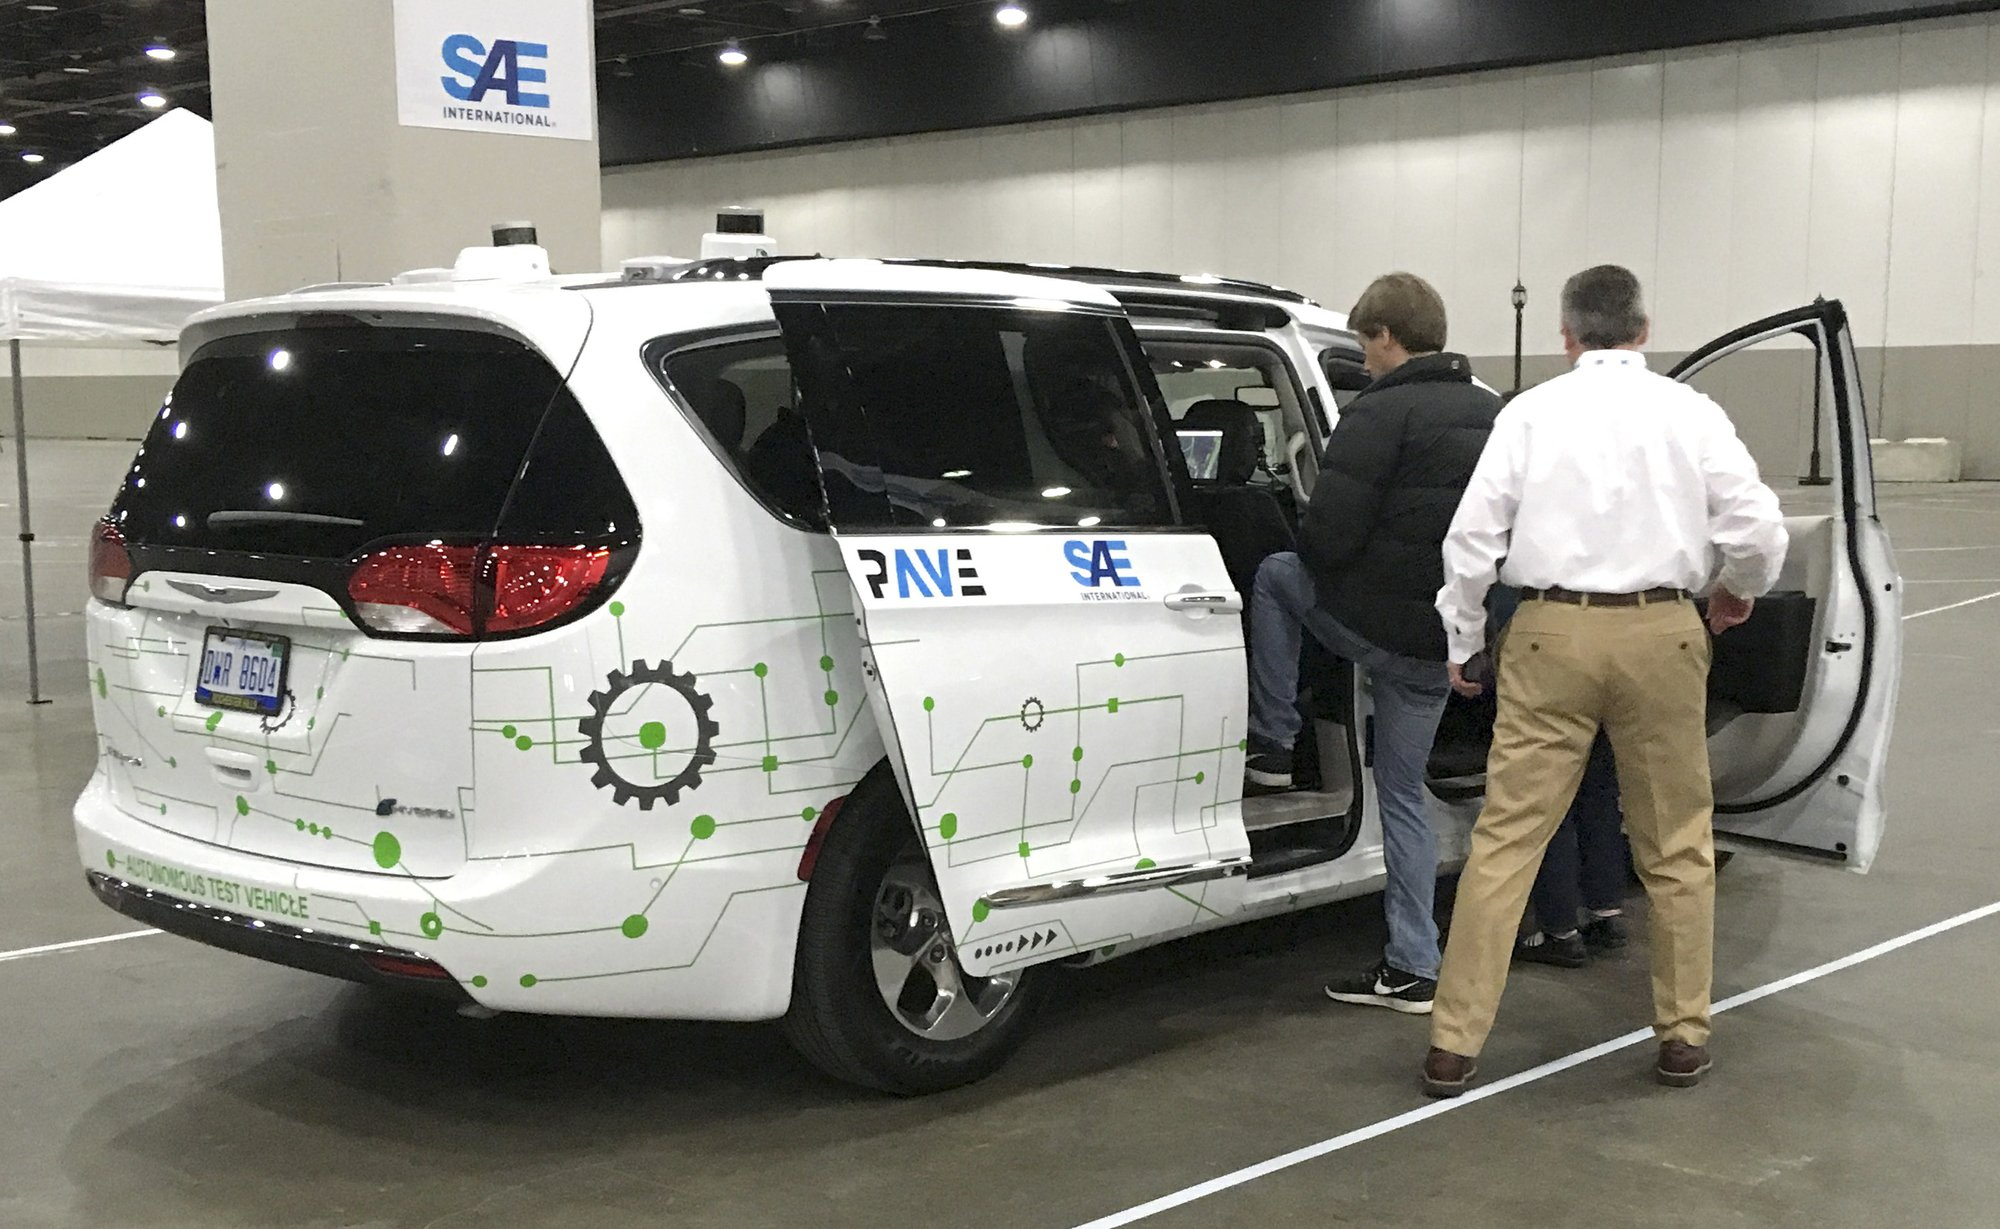 Public gets to take free ride in self-driving car in Detroit